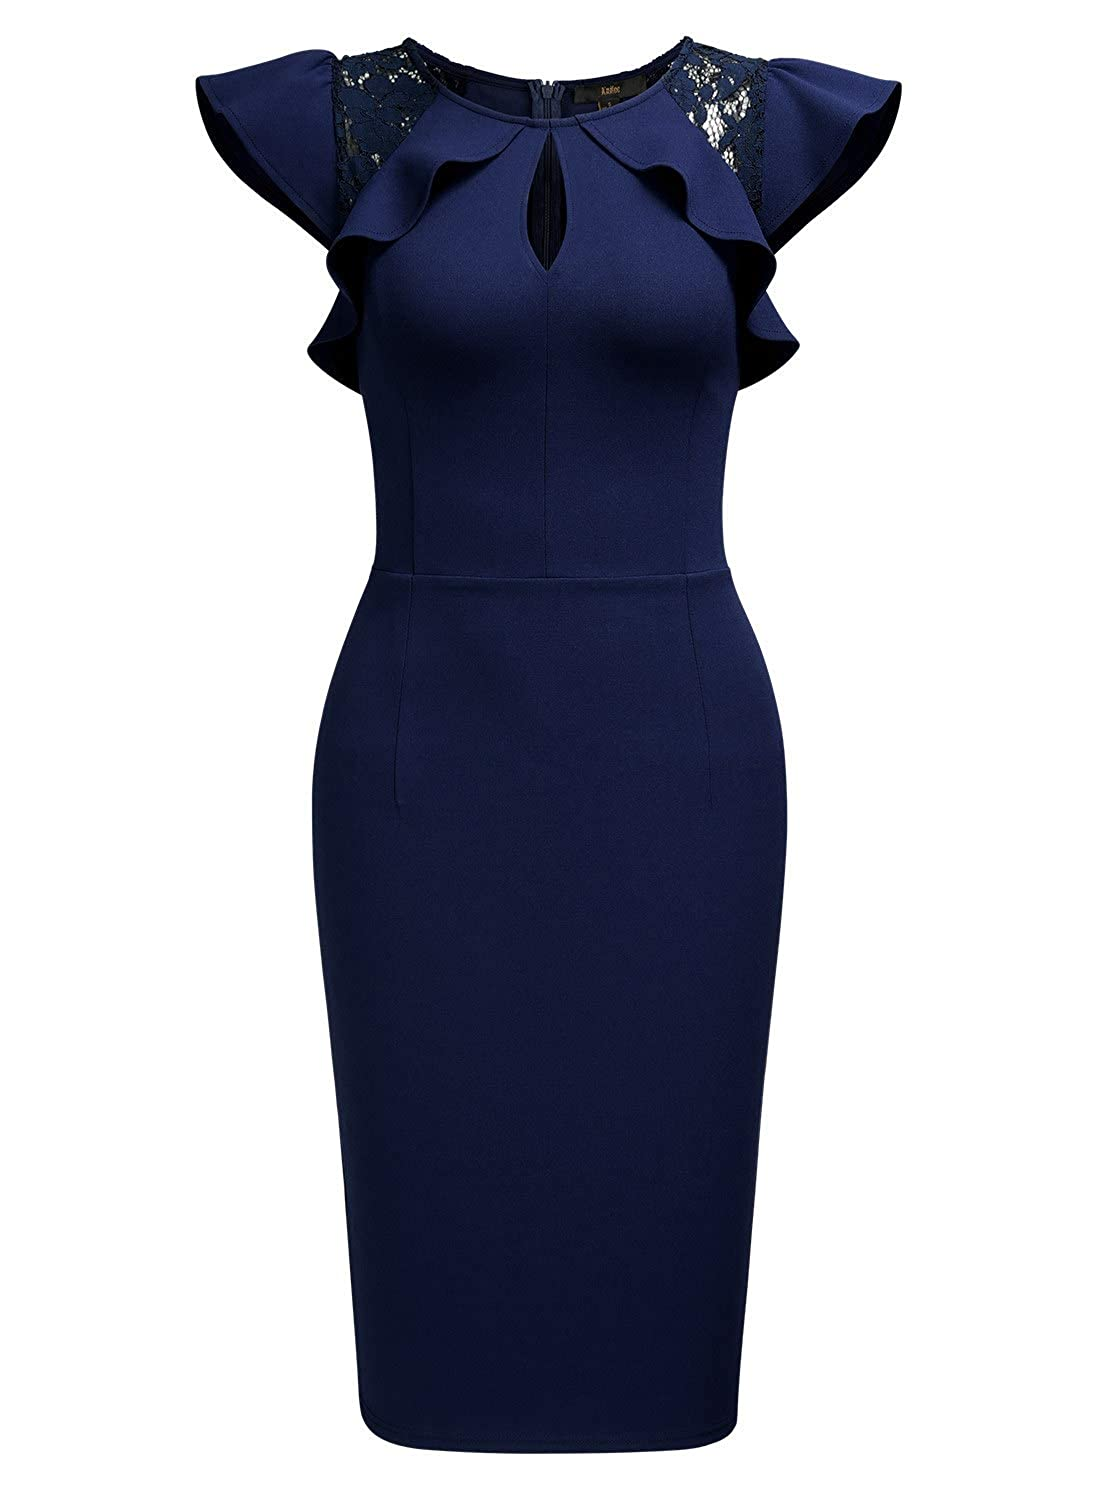 c23359cfb59 Knitee Women s Business Casual Office Evening Nightout Cocktail Party  Bodycon Cut Out Sheath Dress at Amazon Women s Clothing store